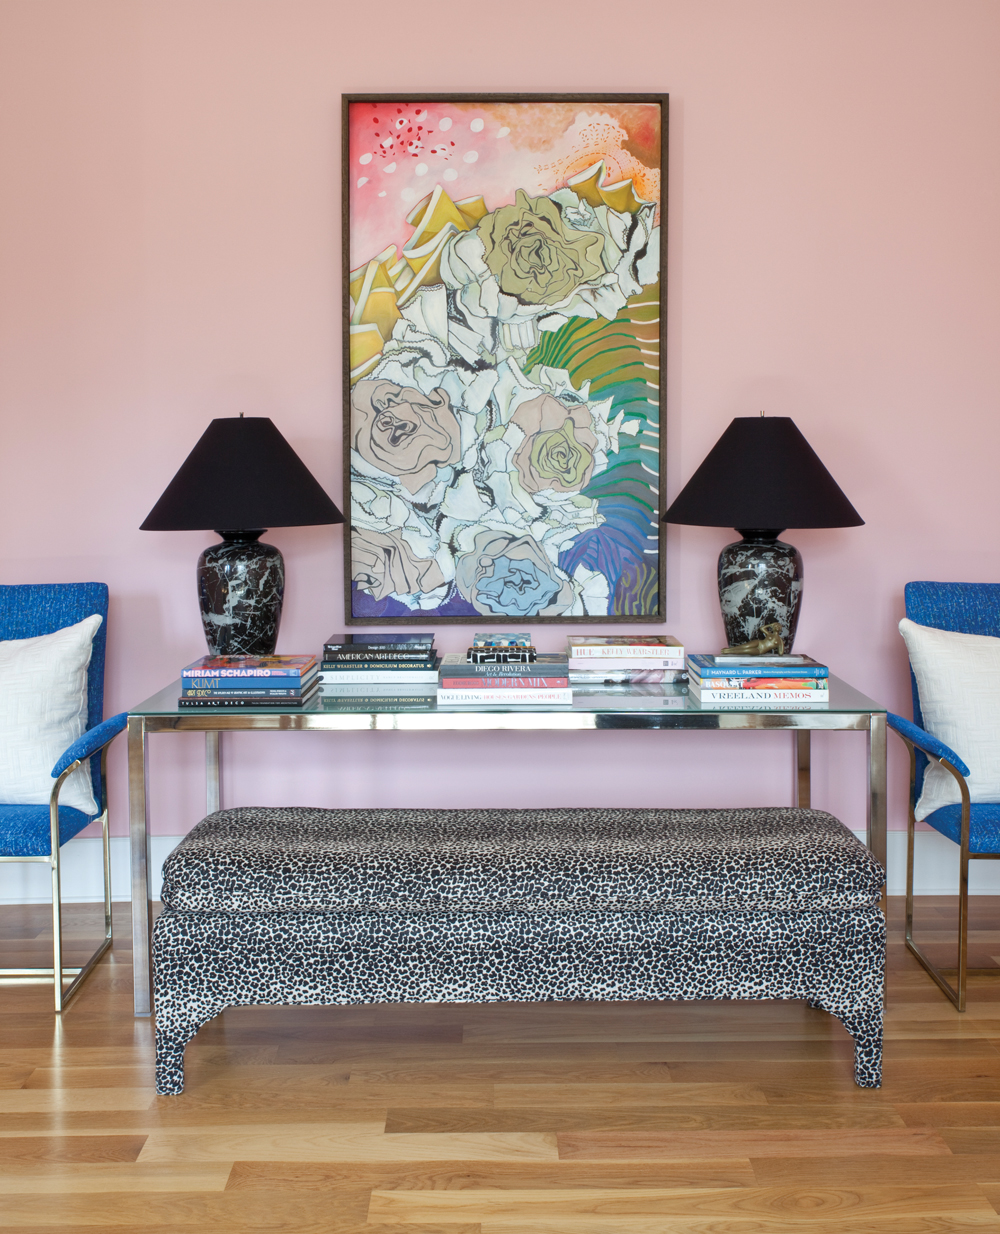 For Gainesville Artist Angela Blehm Her Home Is Her